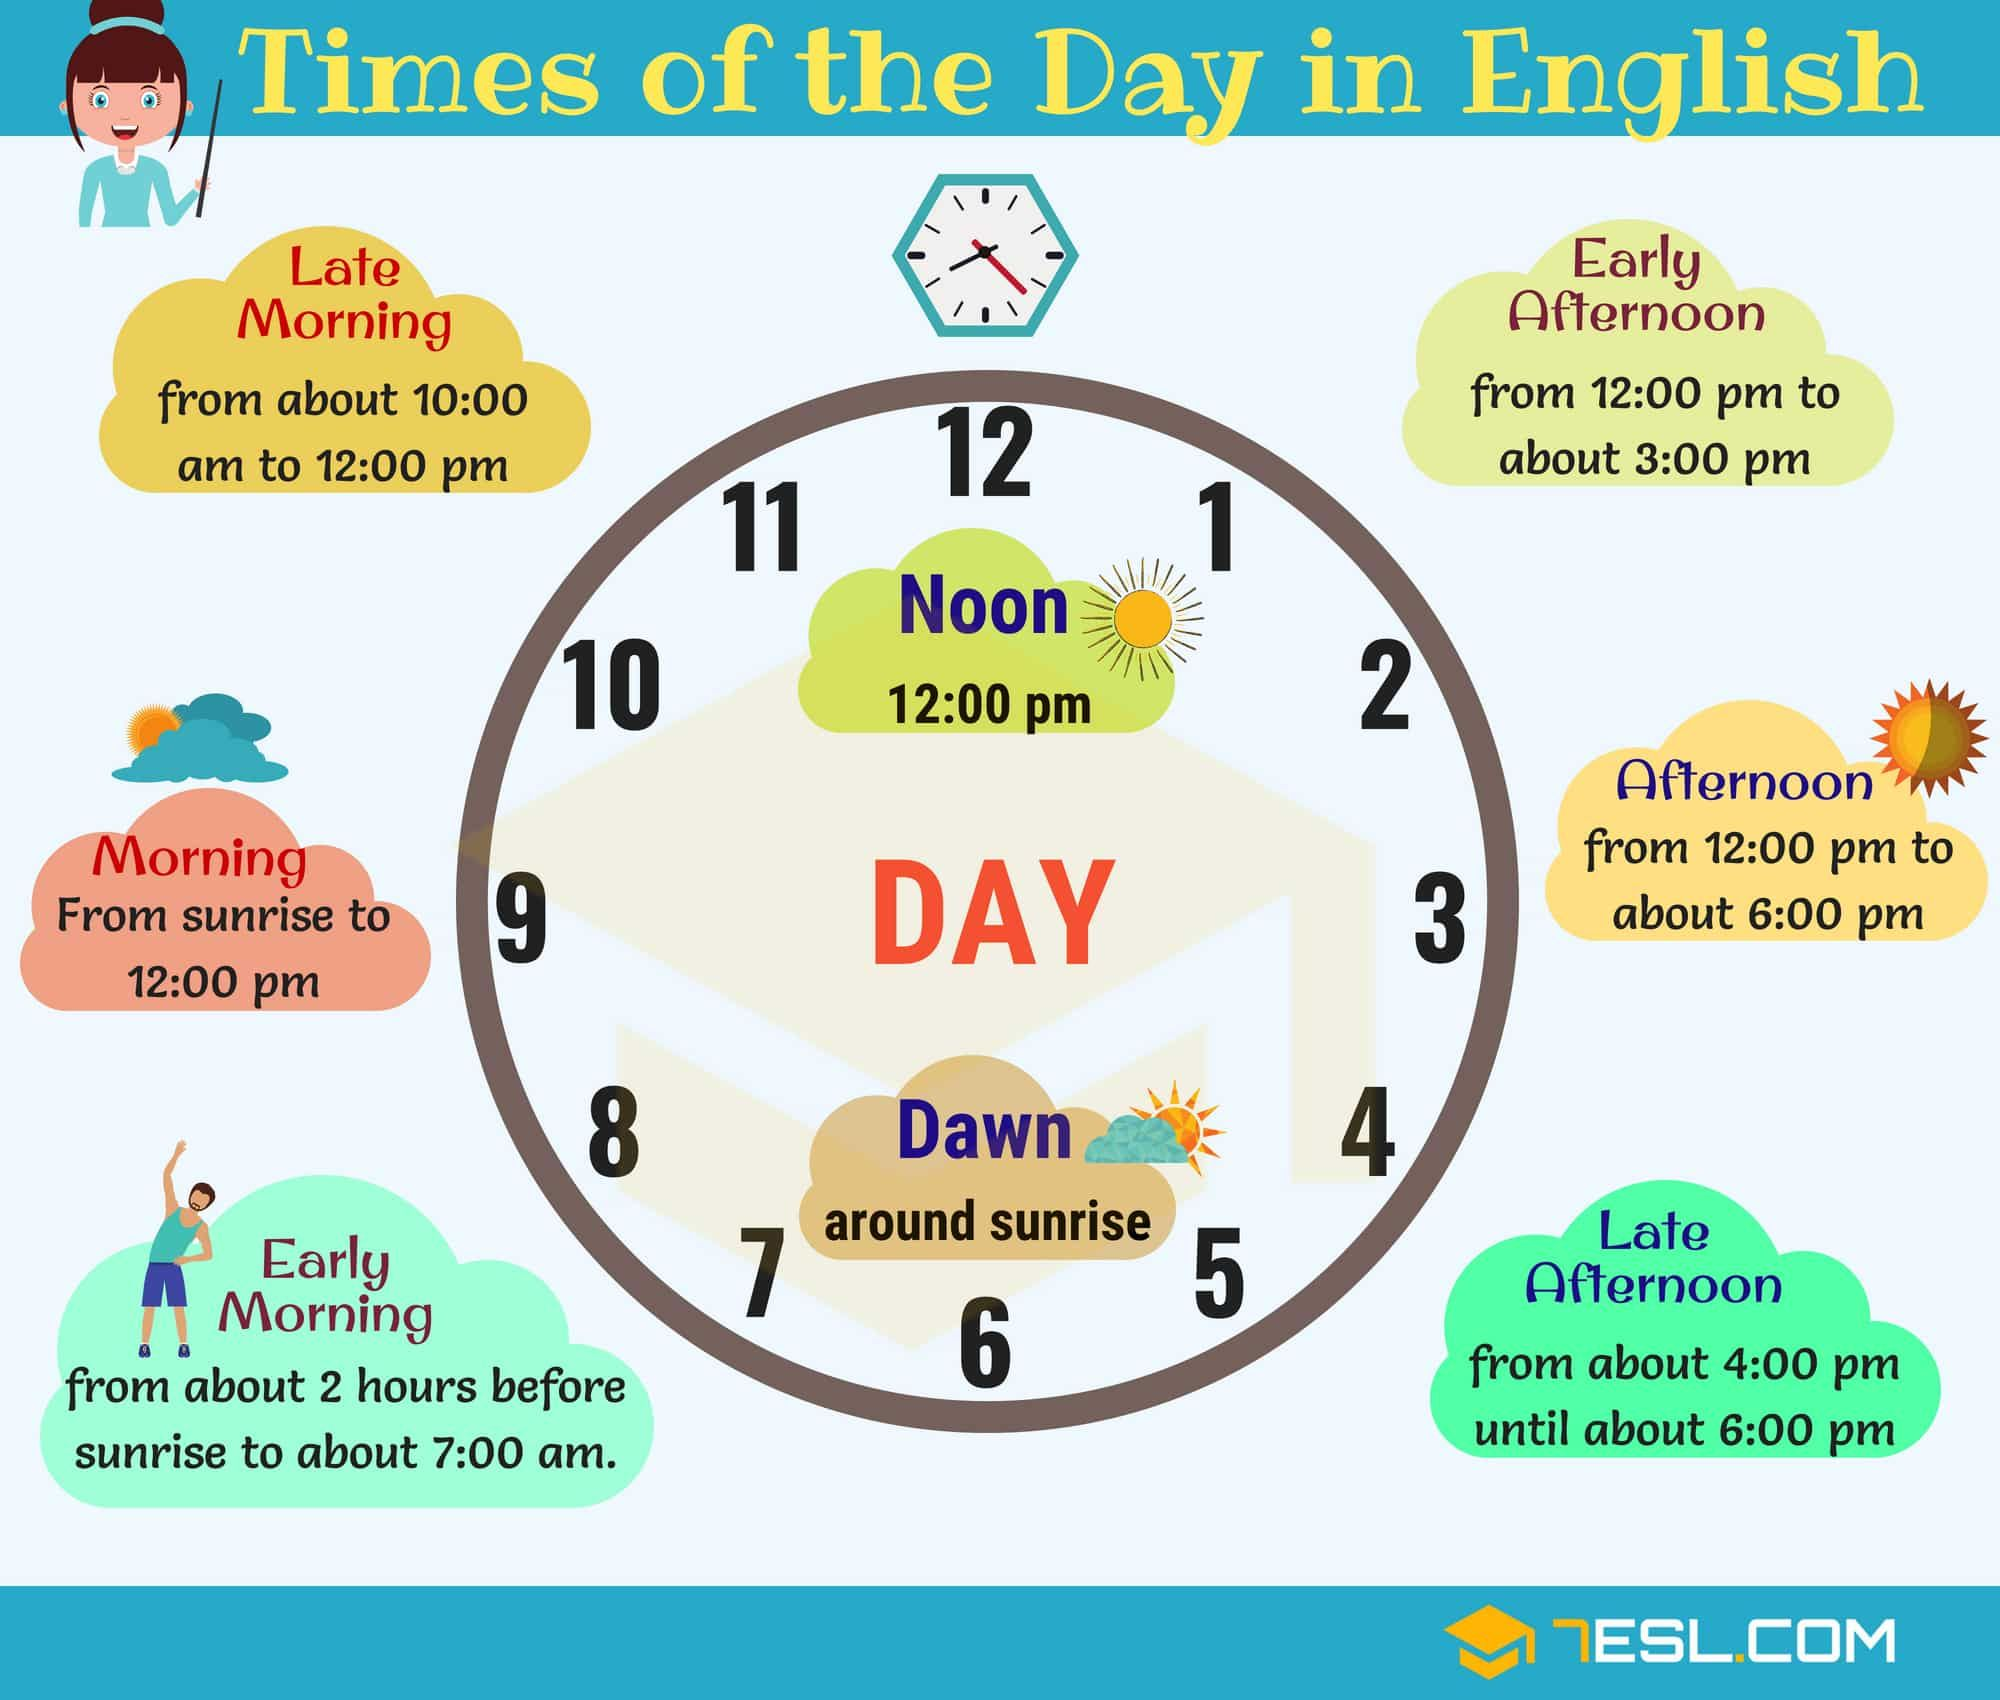 Different Times Of The Day Parts Of The Day In English 7 E S L English Vocabulary English English Language Learning